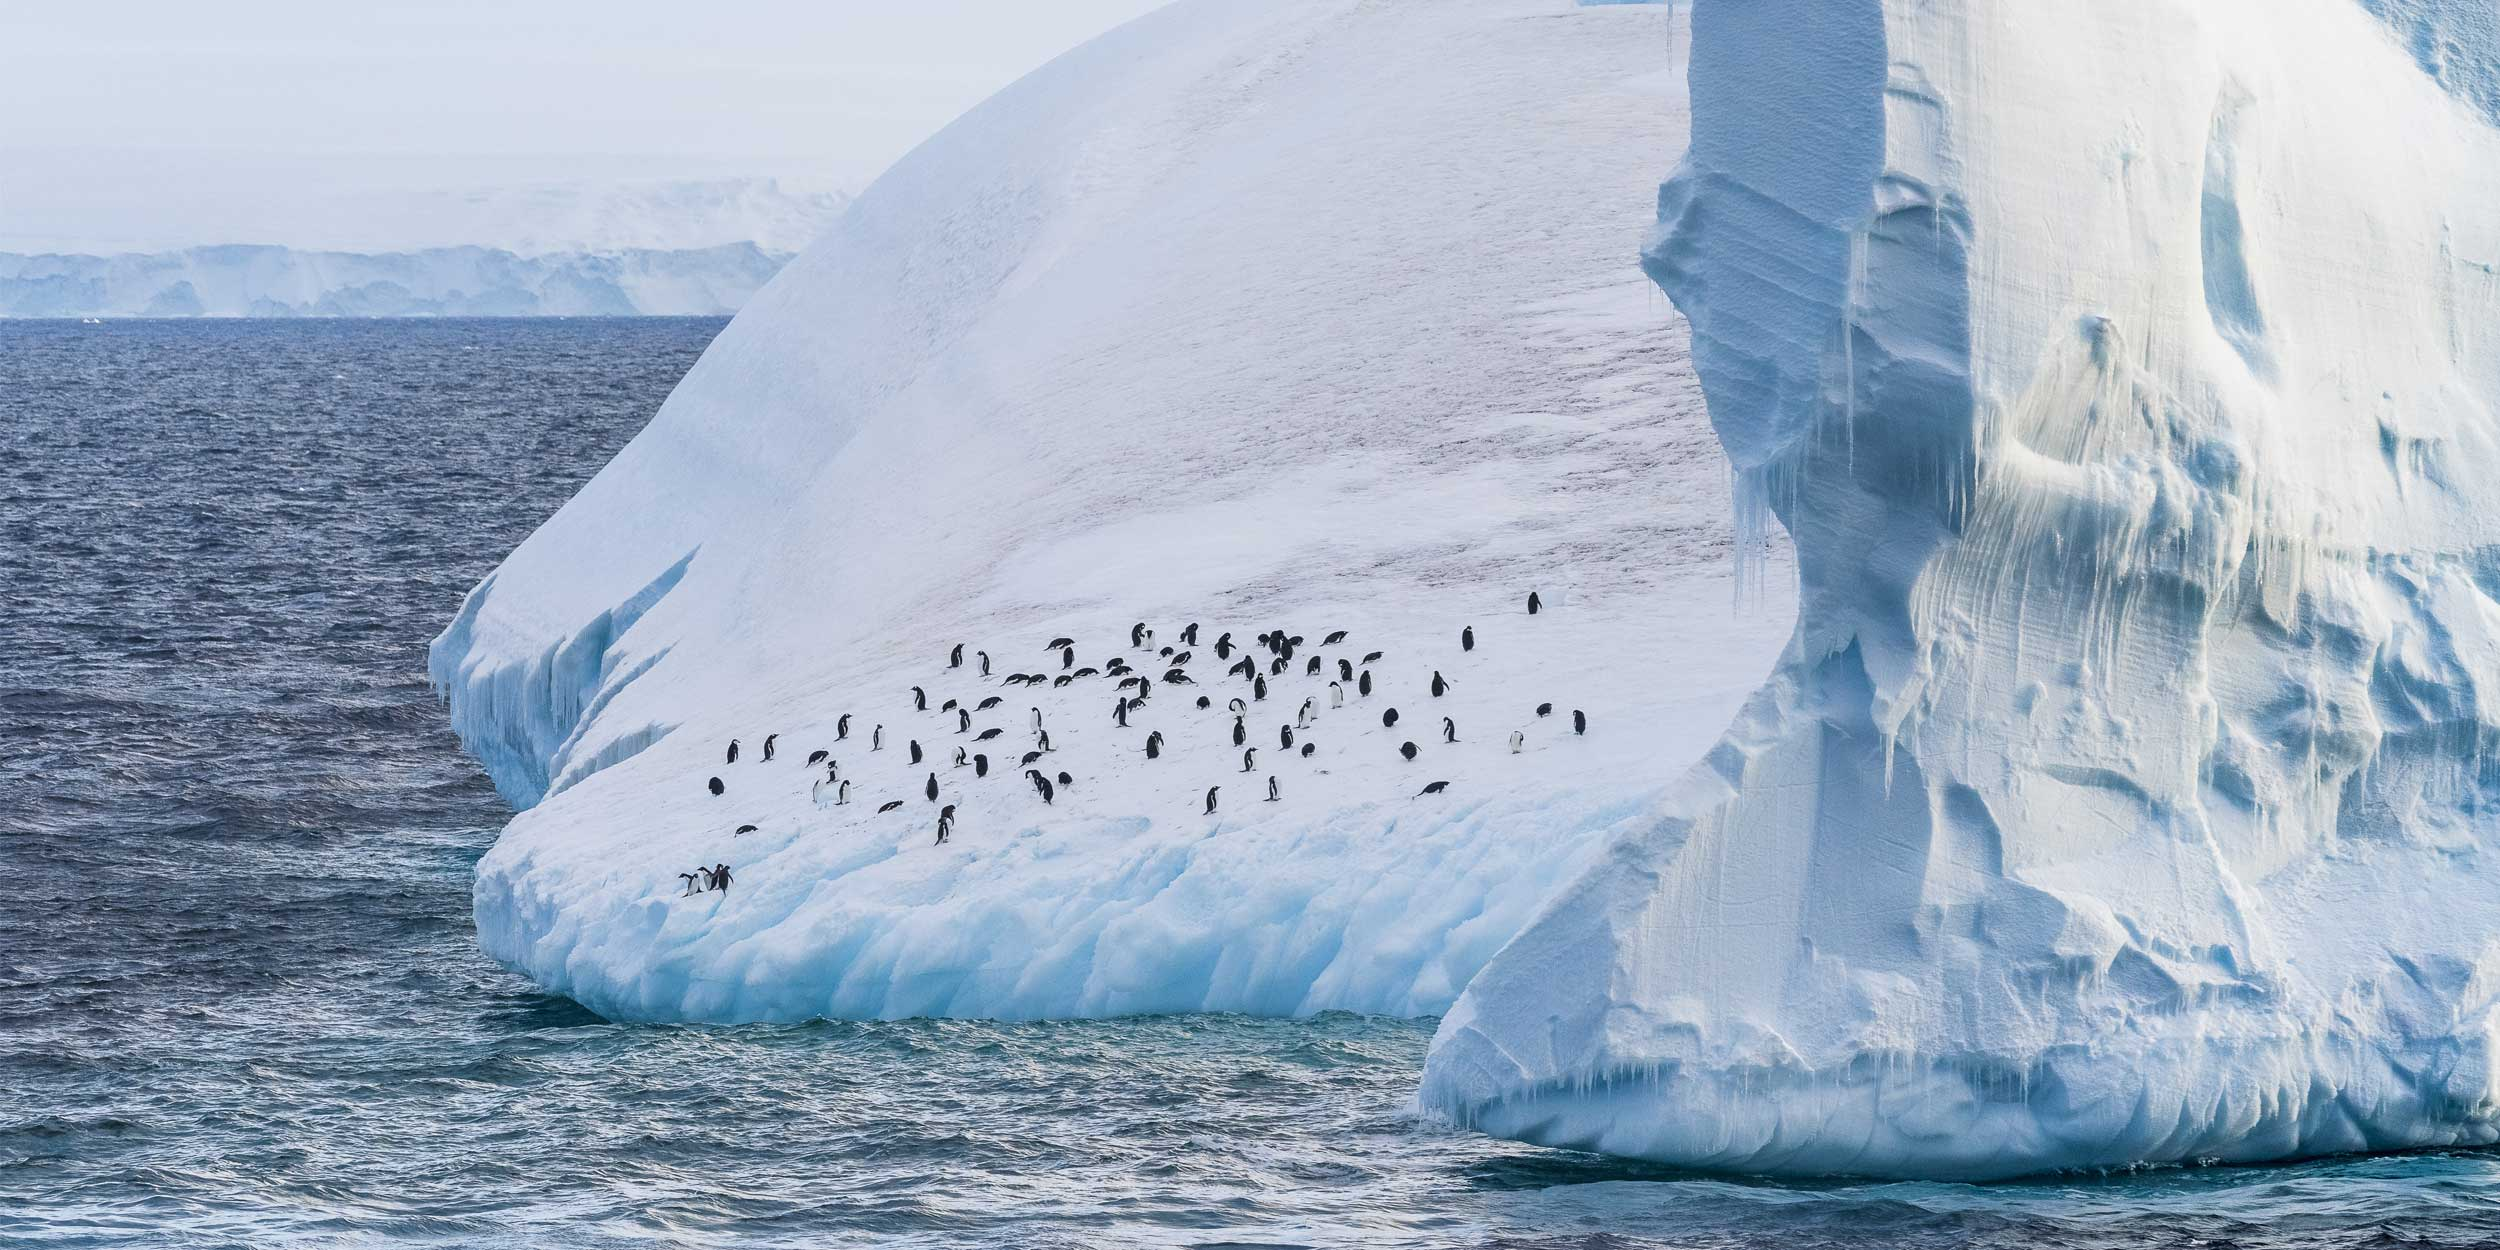 Antarctica Cruises Explore The Last Untouched Continent - 12 things to see and do in antarctica